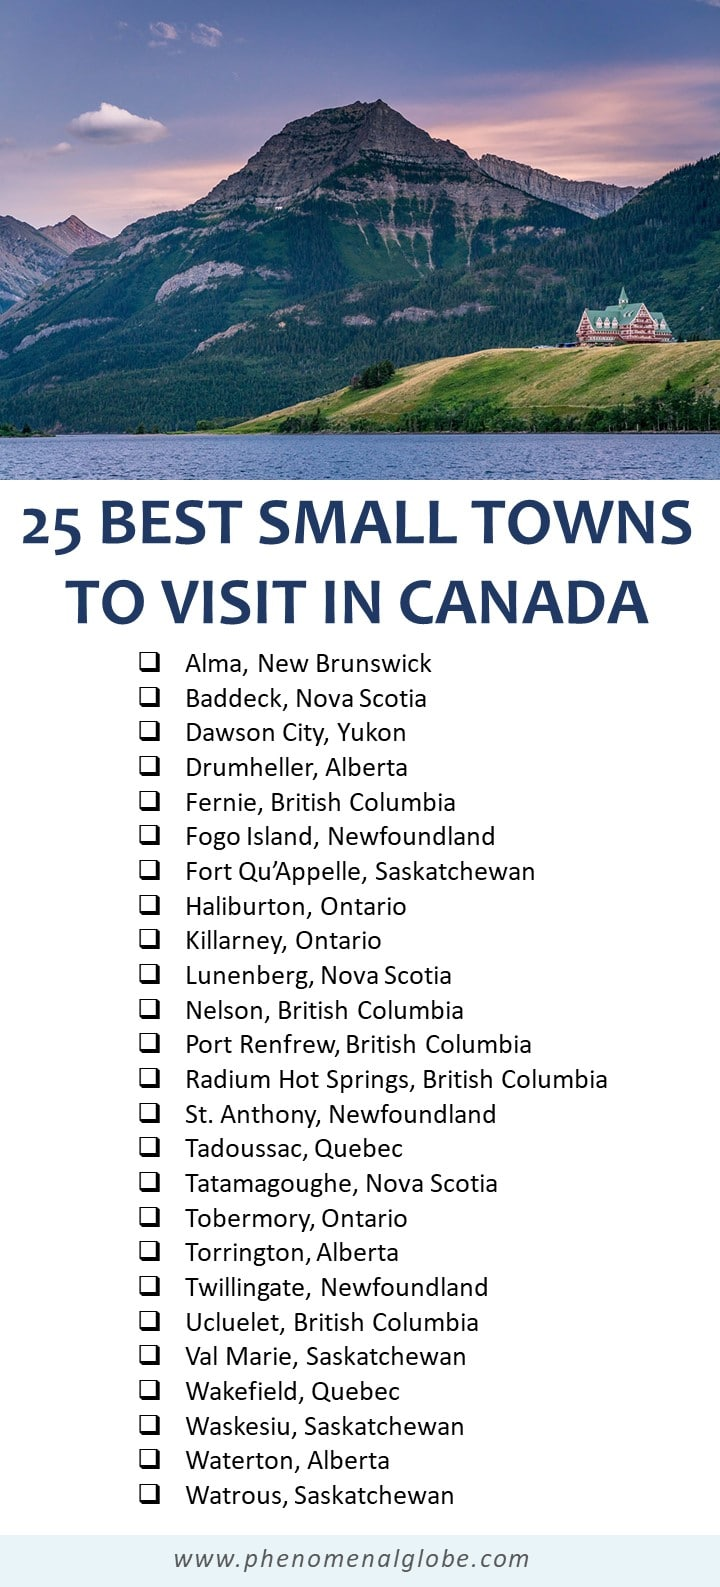 You probably haven't been to these 25 incredible small towns across Canada! Full of picturesque charm, beautiful nature and unique character and worth a spot on your Canada travel bucket list. #Canada #SmallTowns #OffTheBeatenTrack